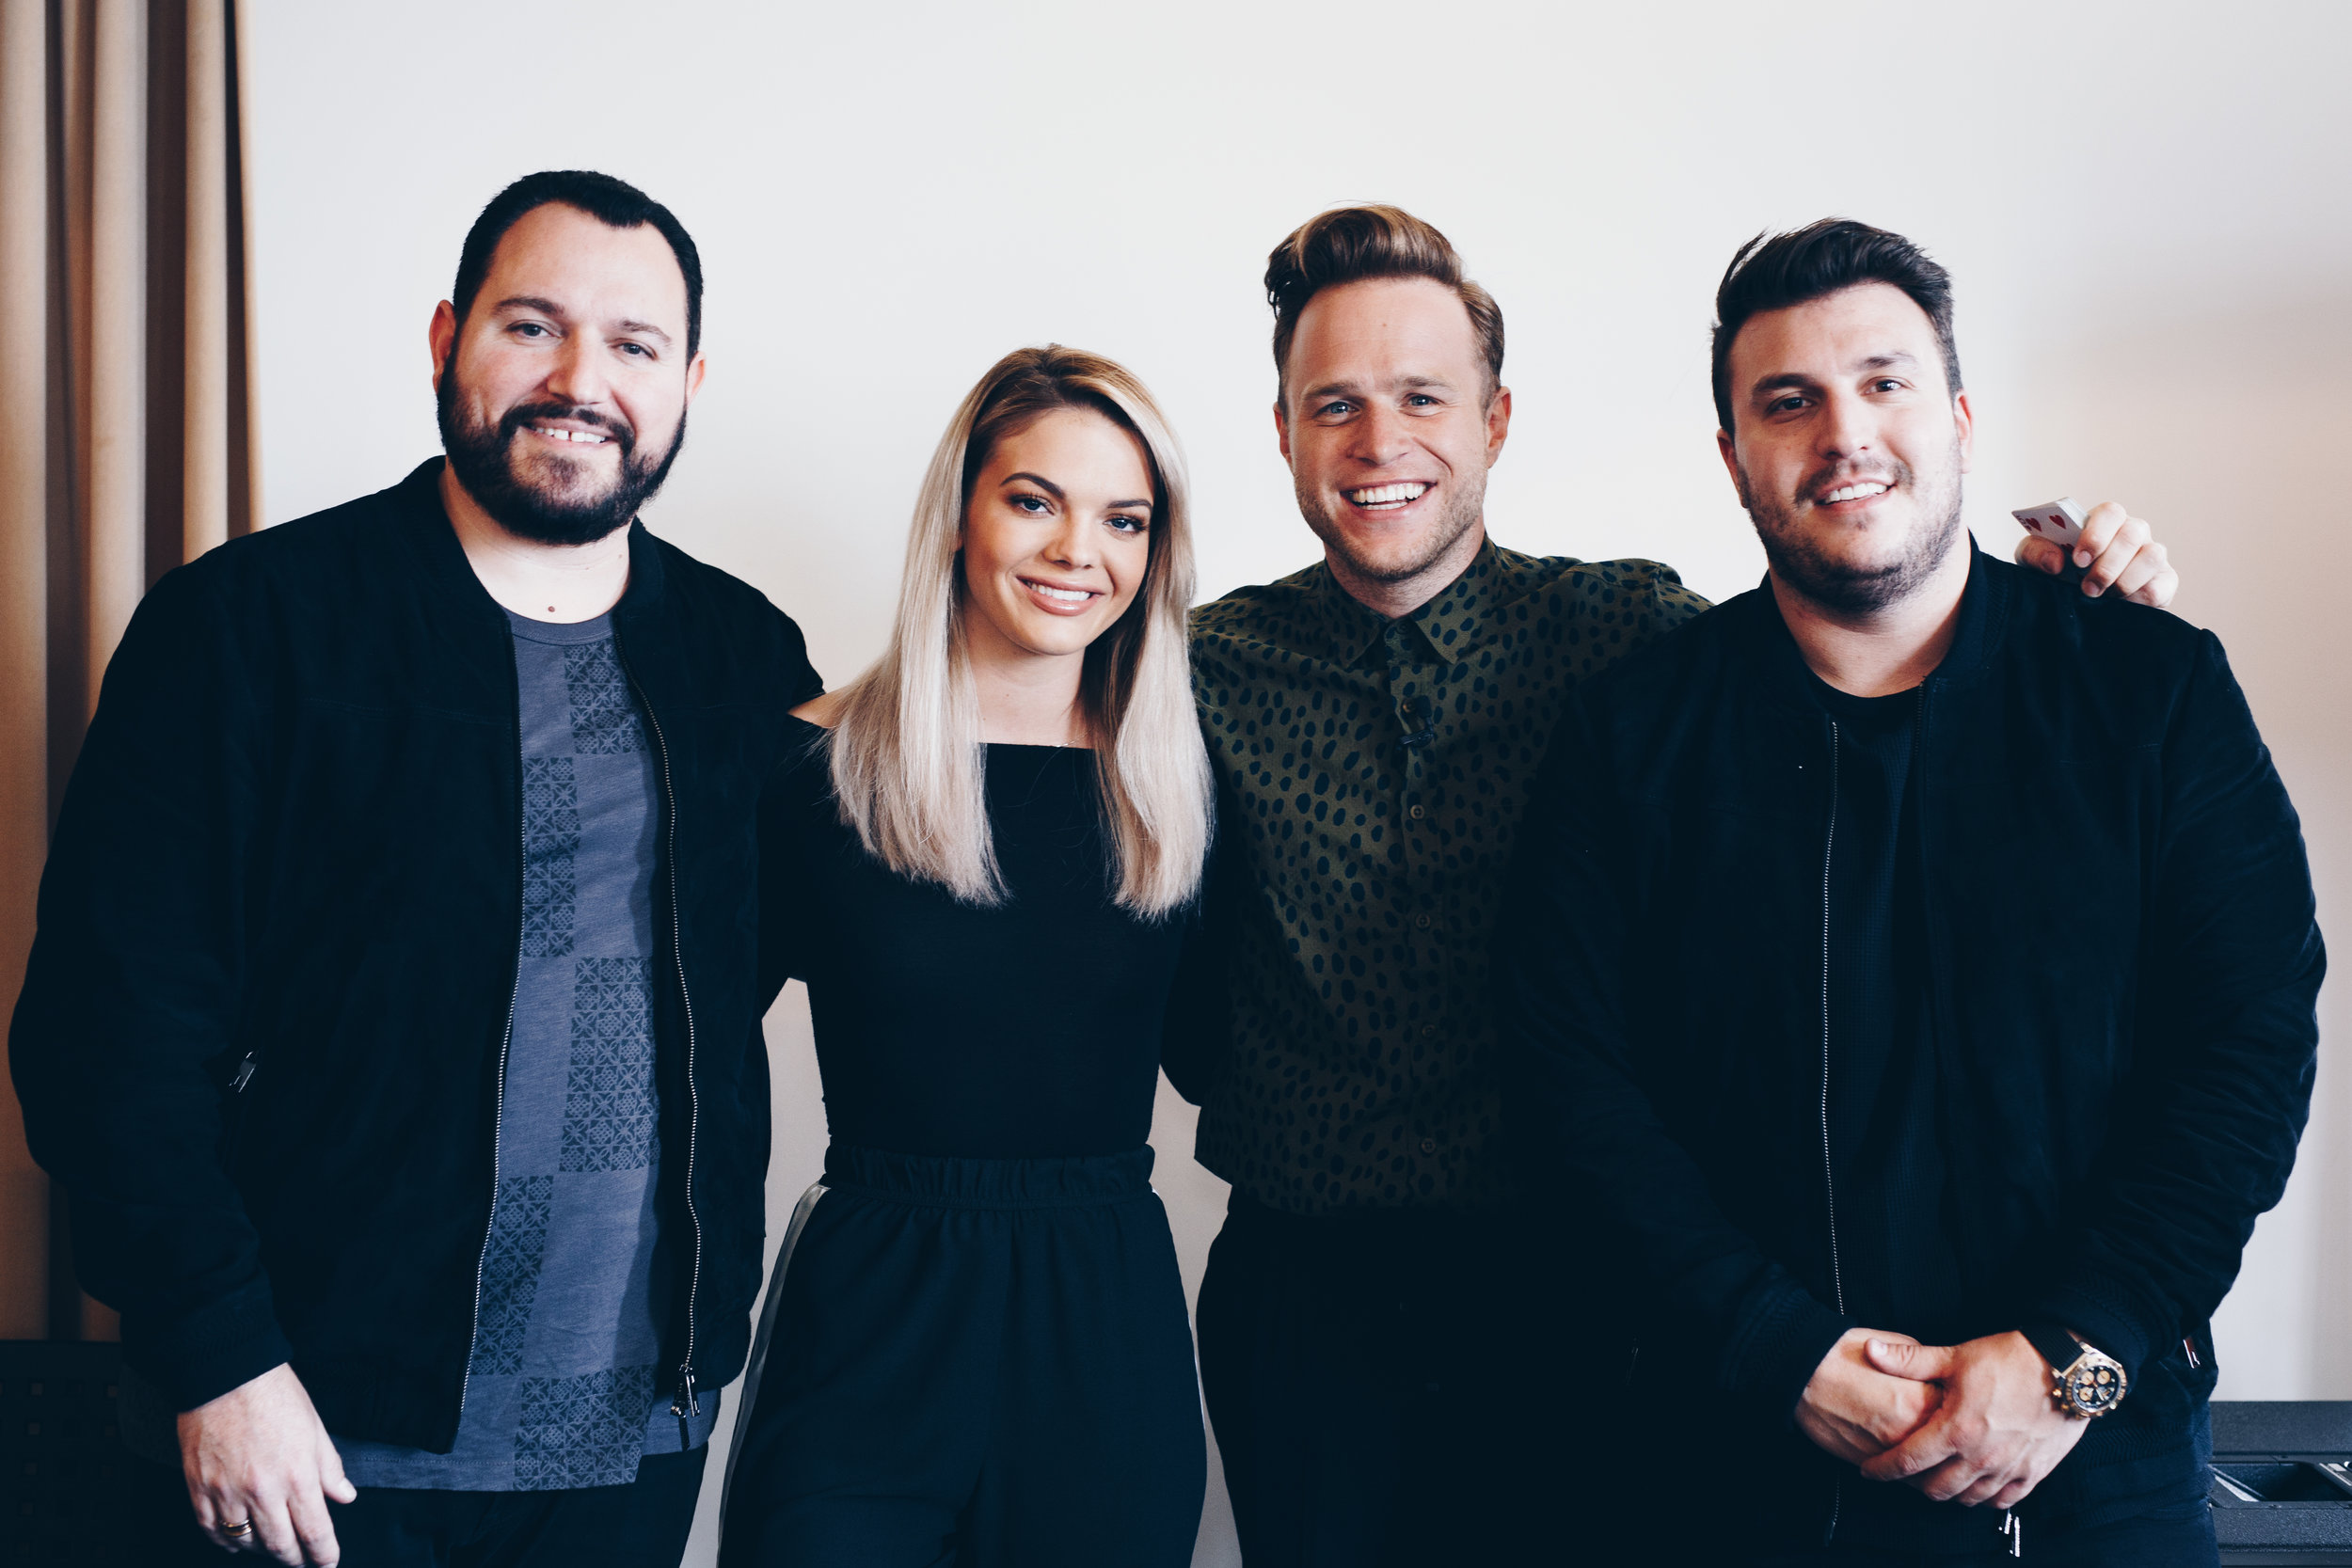 Britain's Got Talent finalists, DNA Mind Readers with Olly Murs and Louisa Johnson at the Sony Music UK Studios